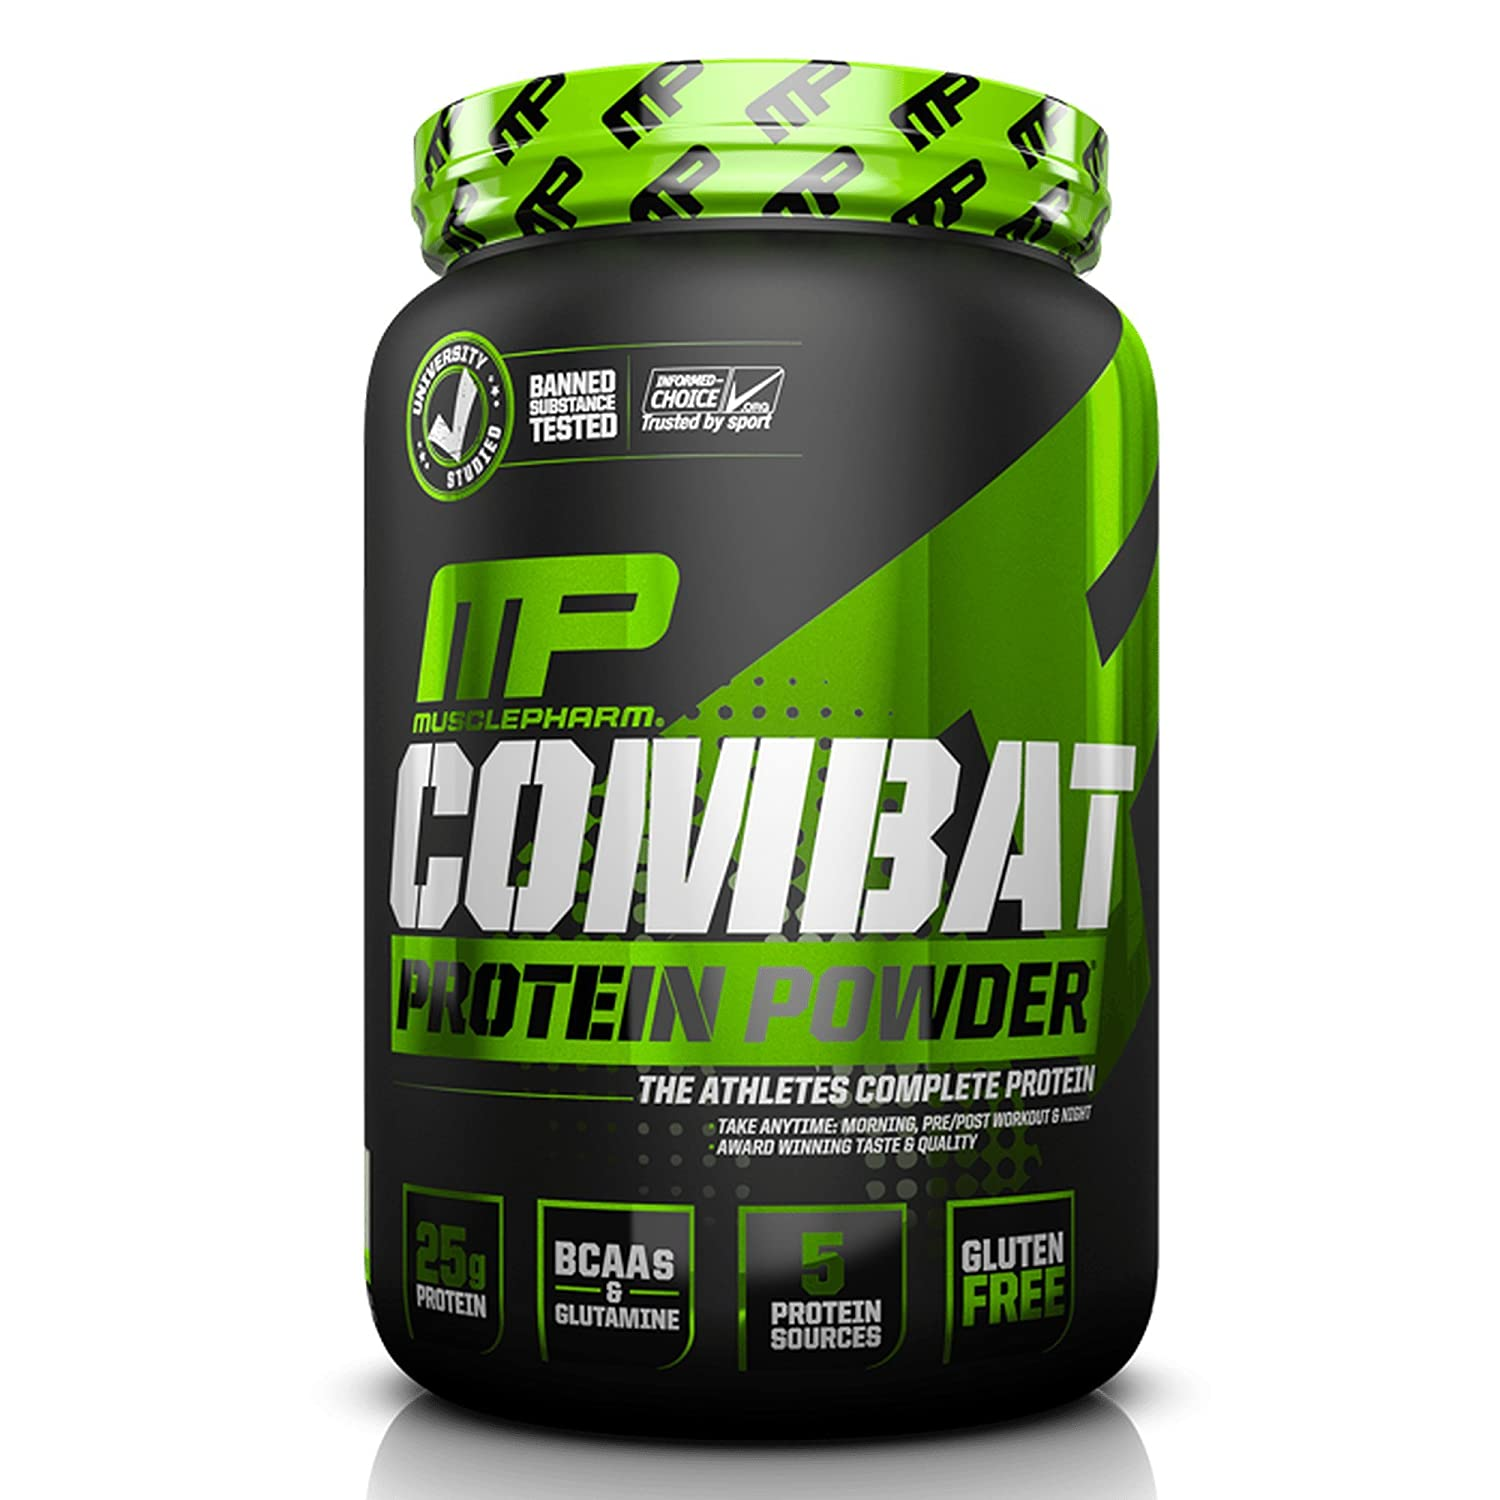 MusclePharm Combat Protein Powder – Essential blend of Whey, Isolate, Casein and Egg Protein with BCAA s and Glutamine for Recovery, Cookies N Cream, 2 Pound